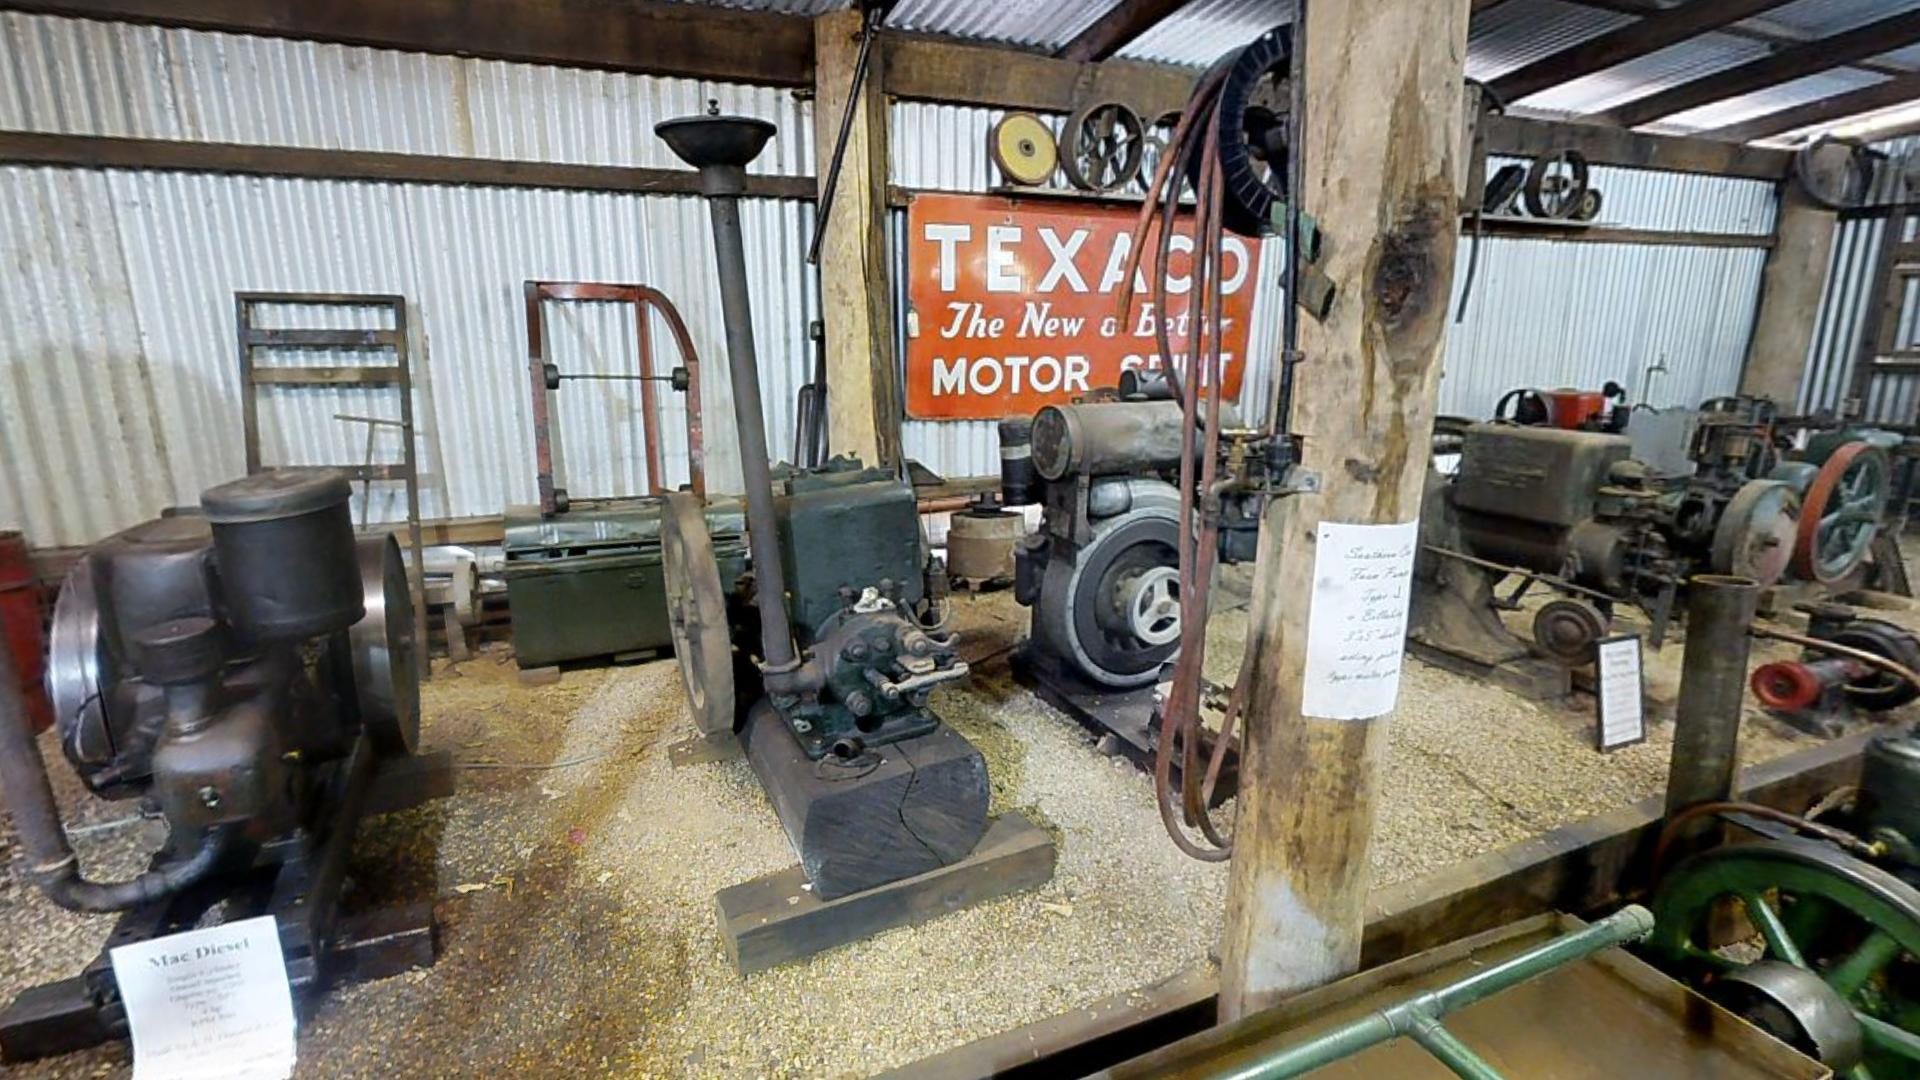 Queensland Steam & Vintage Machinery Museum